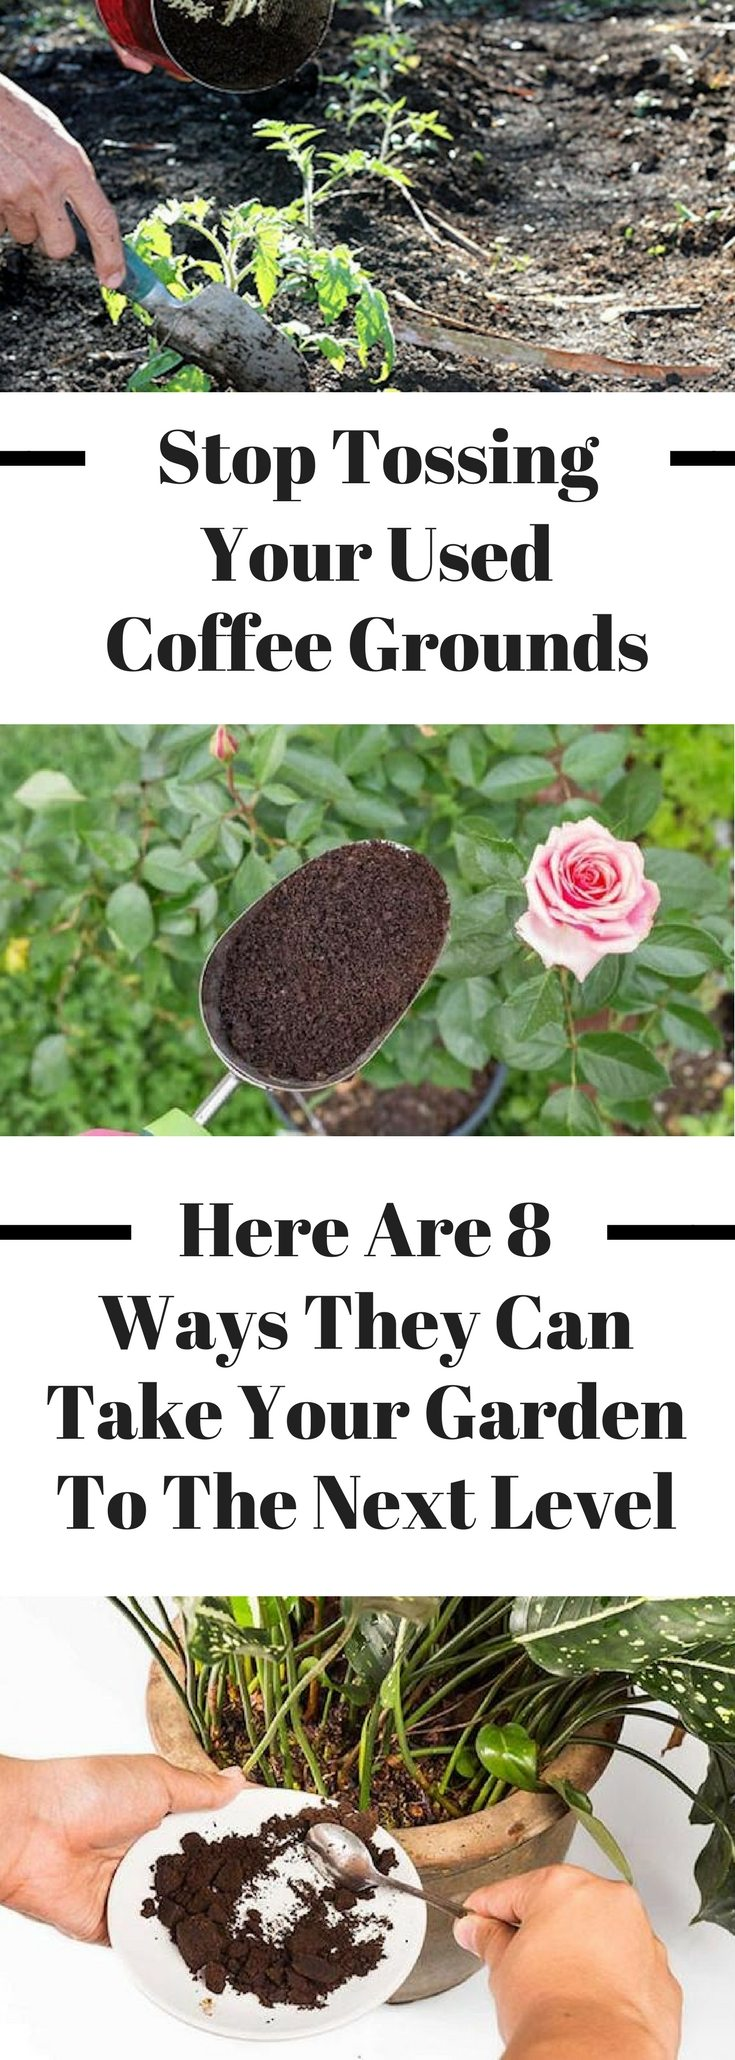 8 Ways To Use Coffee Grounds In Your Garden